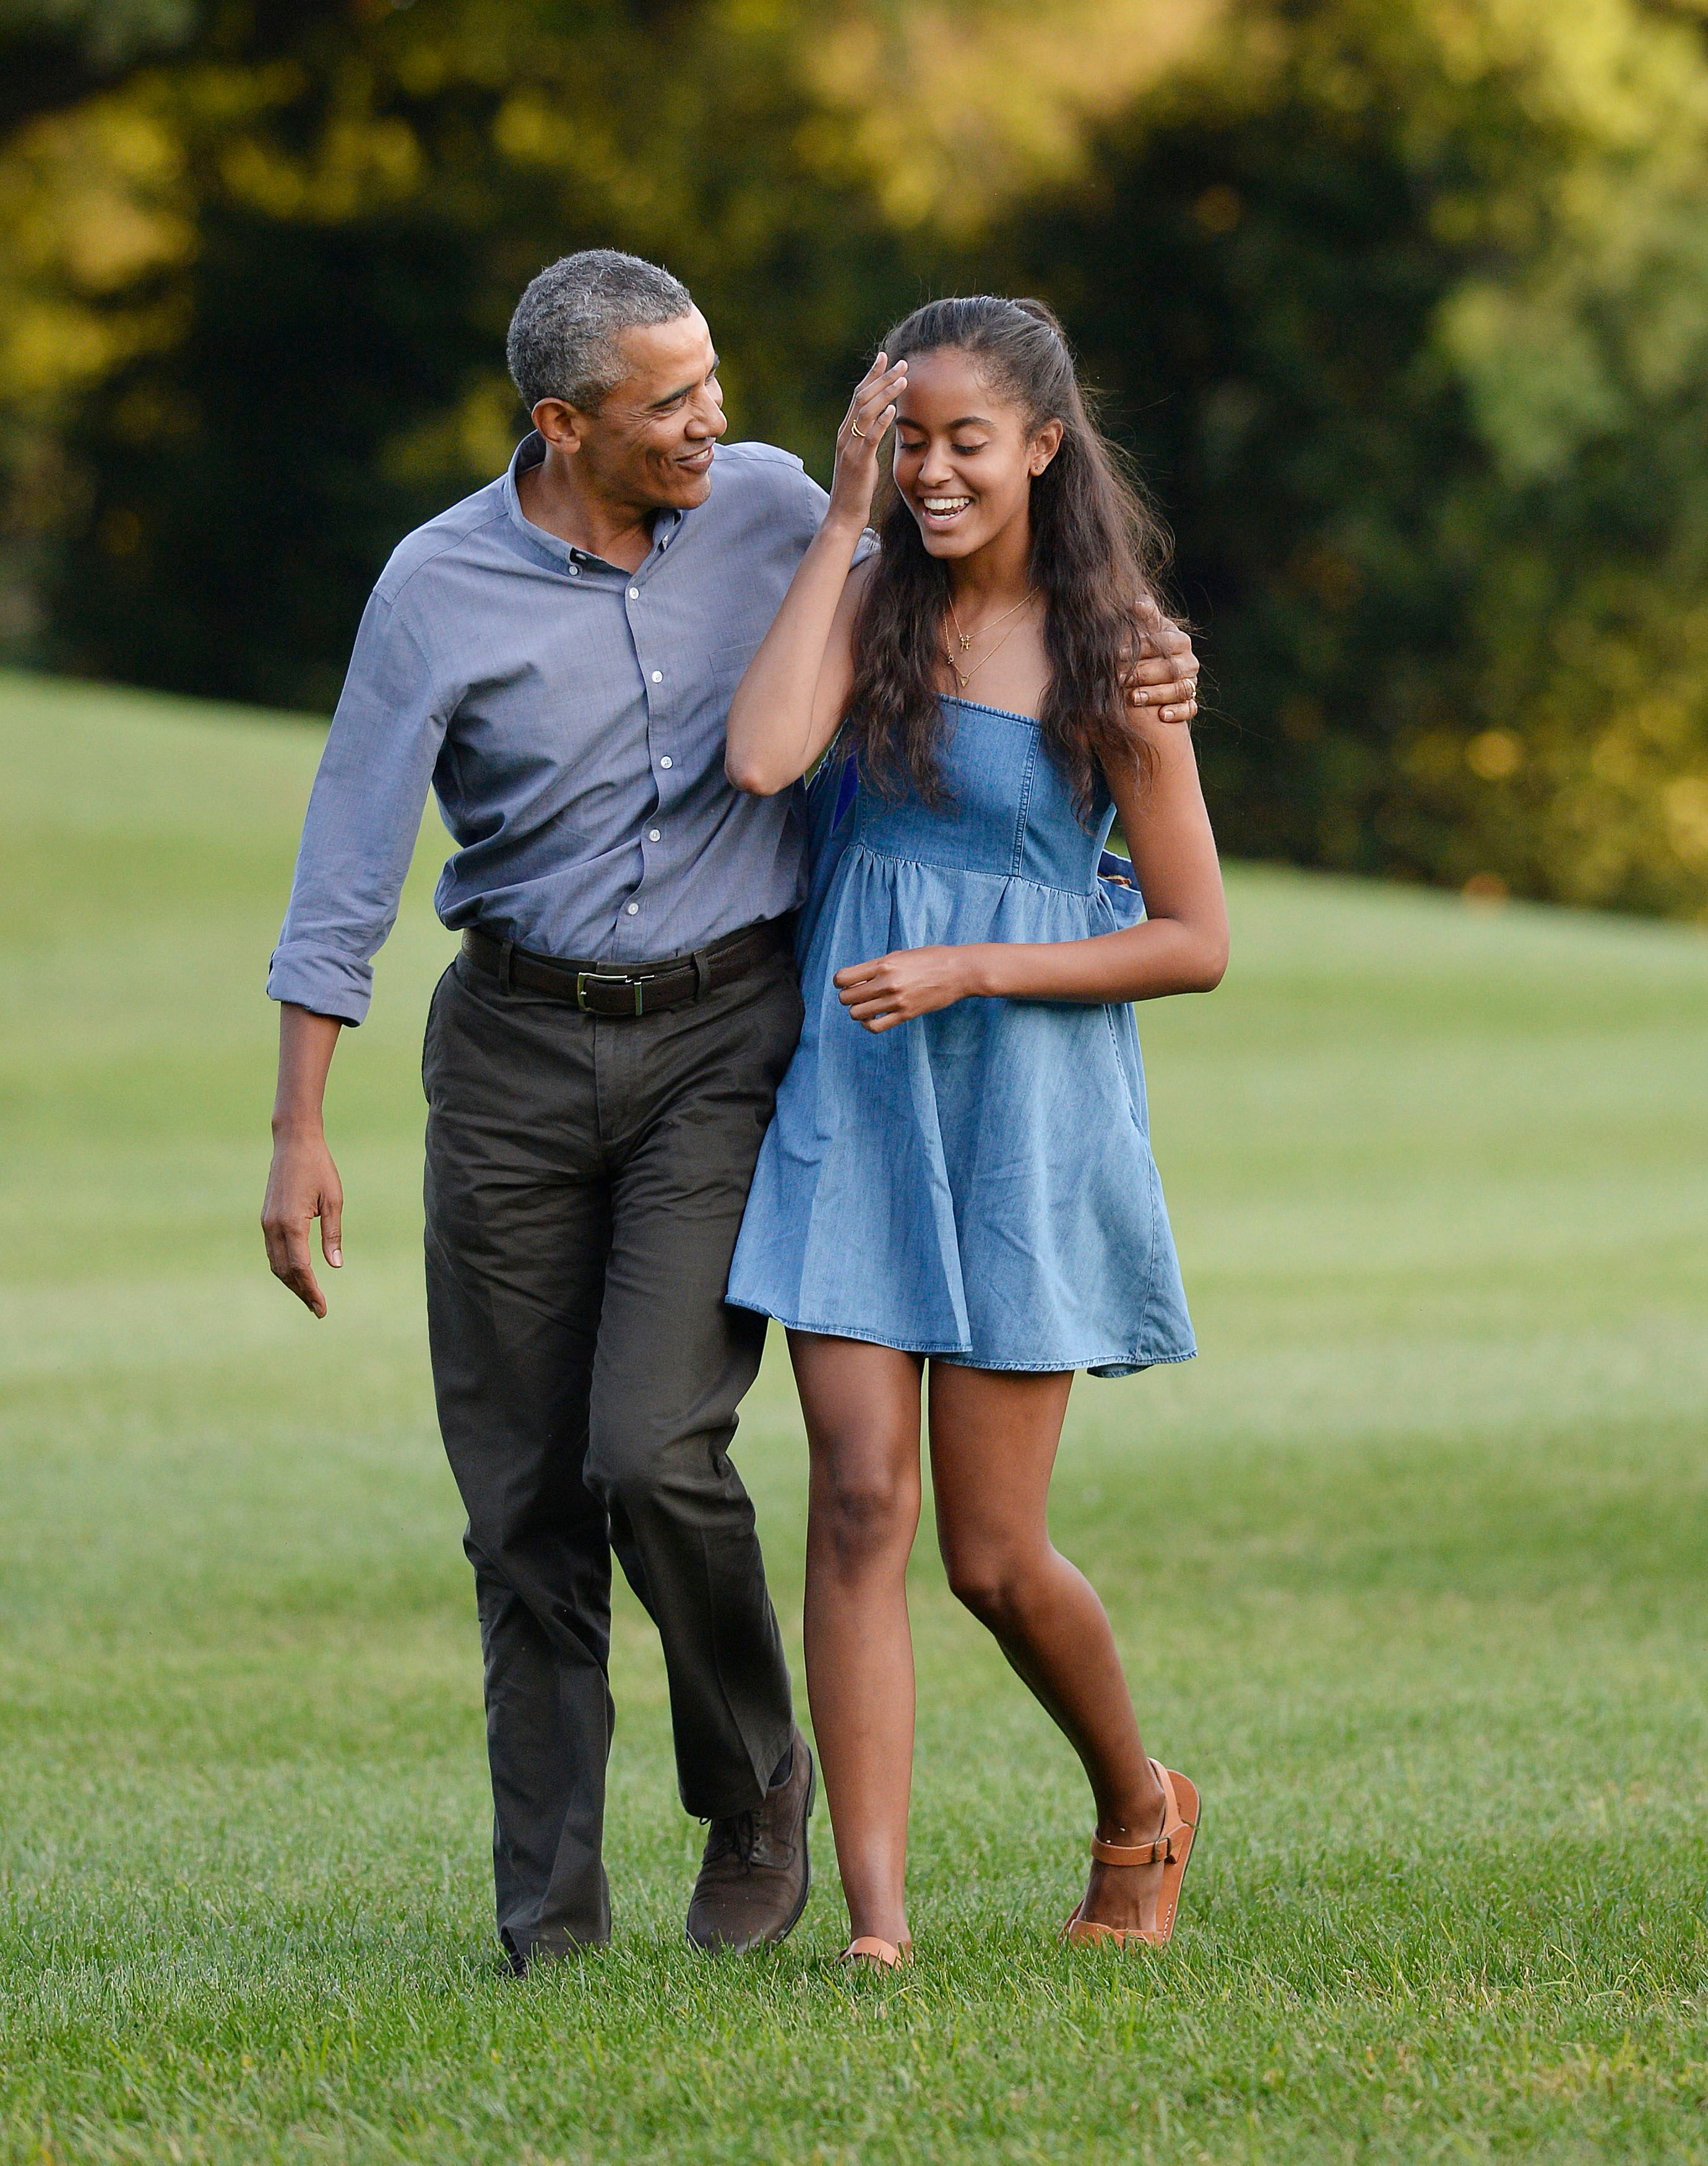 Barack Obama and Sasha Obama at the White House in August 23, 2015 in Washington, D.C. The first family was returning from vacationing on Martha's Vineyard. | Source: Getty Images